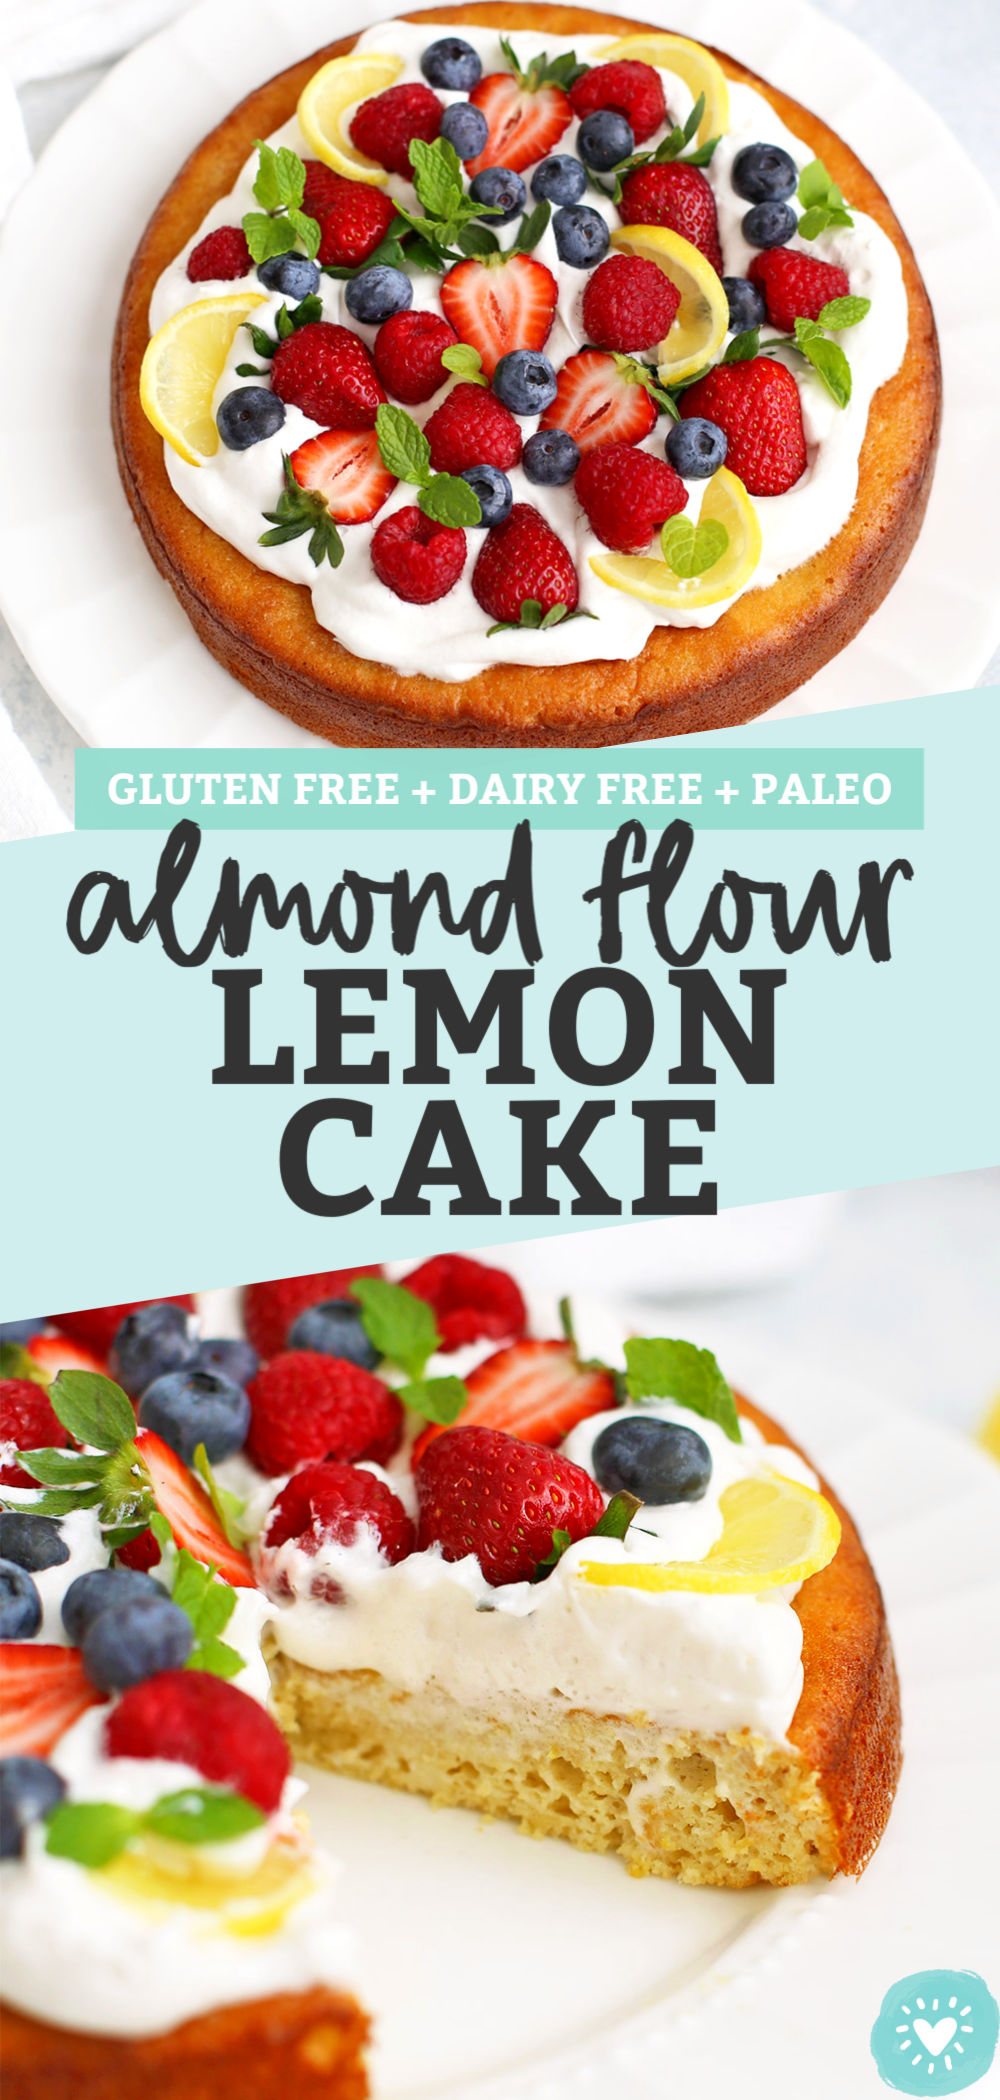 Gluten Free, Paleo Almond Flour Lemon Cake from One Lovely Life